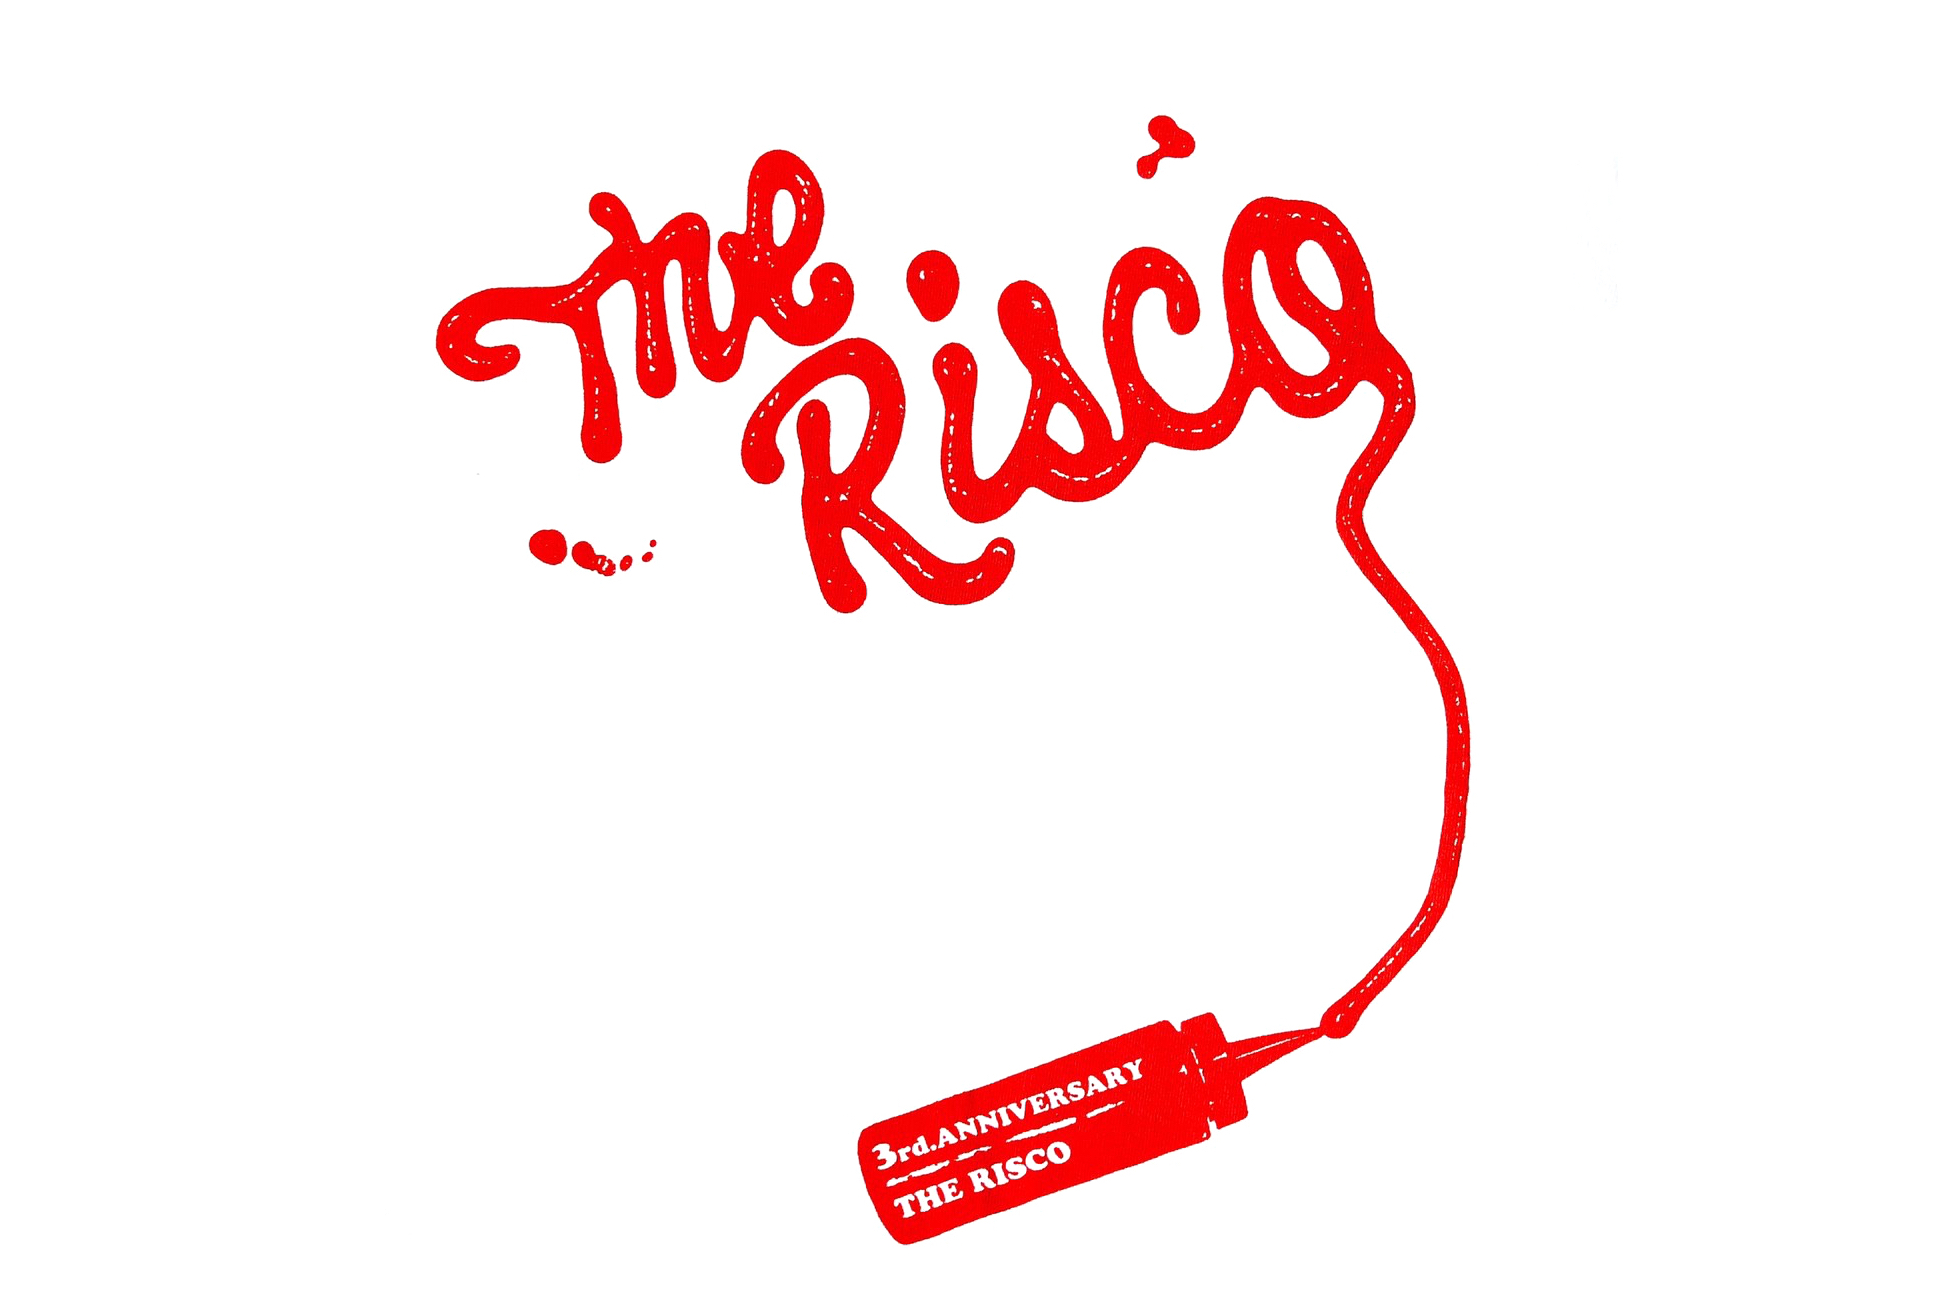 THE RISCO 3rd ANNIVERSARY